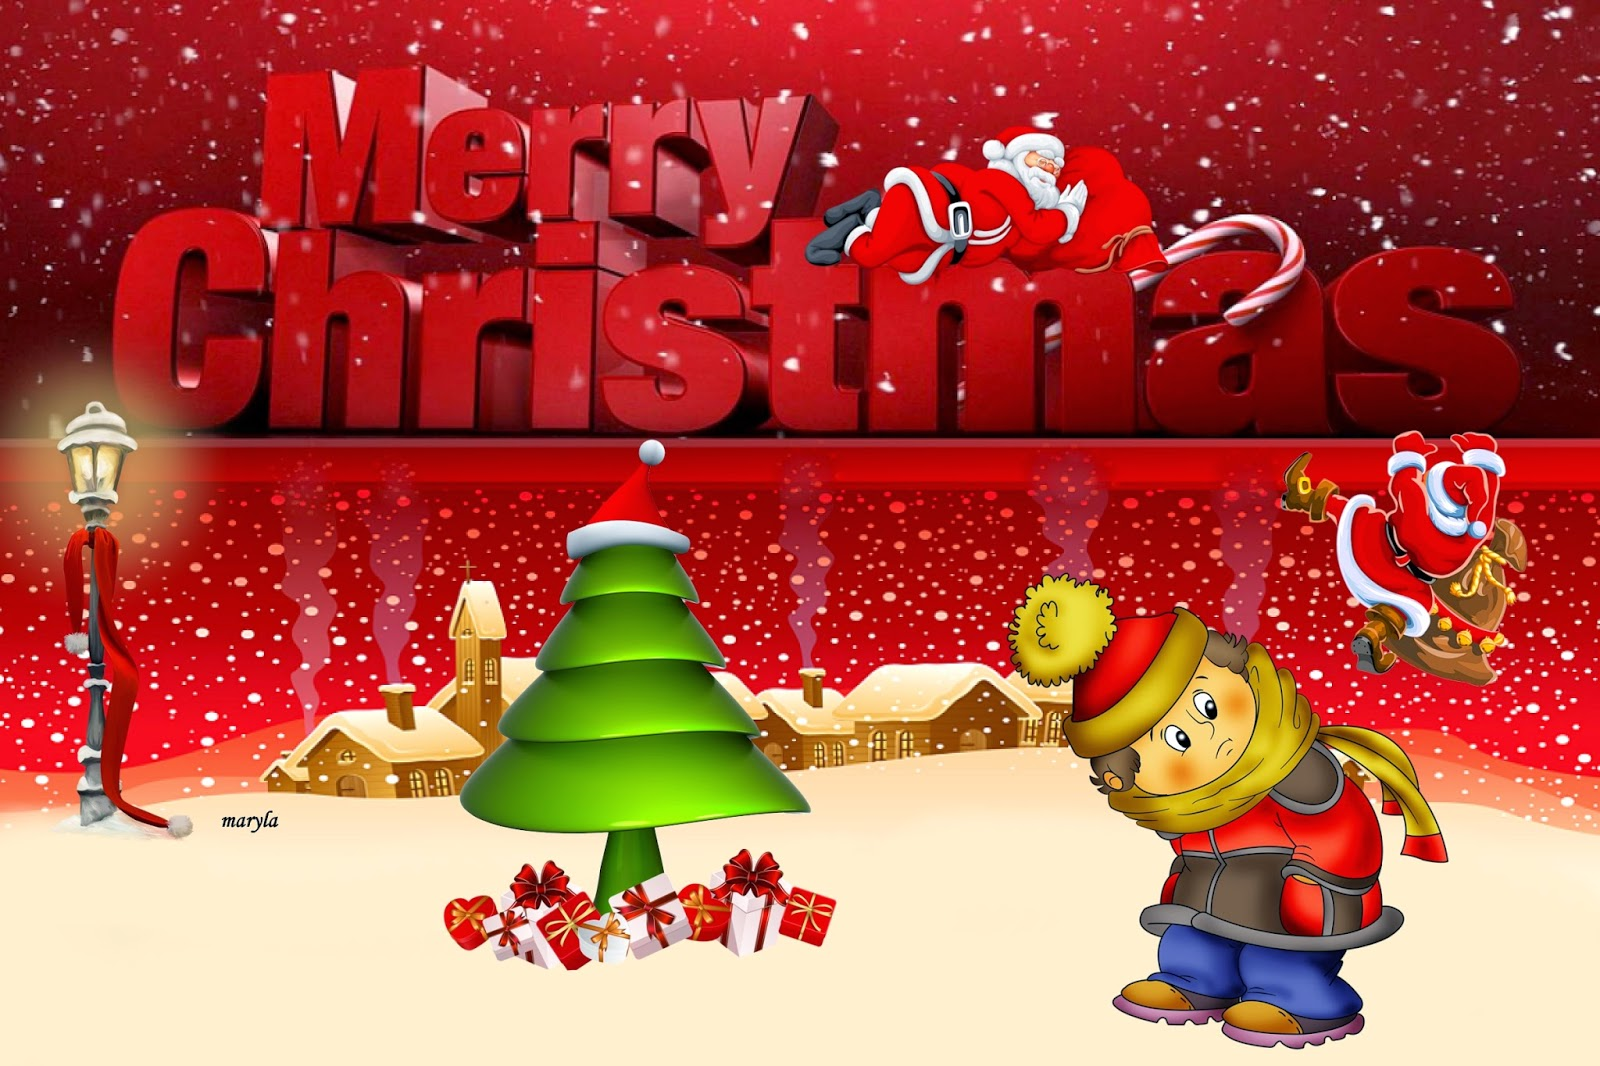 Animated merry christmas text animated merry christmas text photo11 m4hsunfo